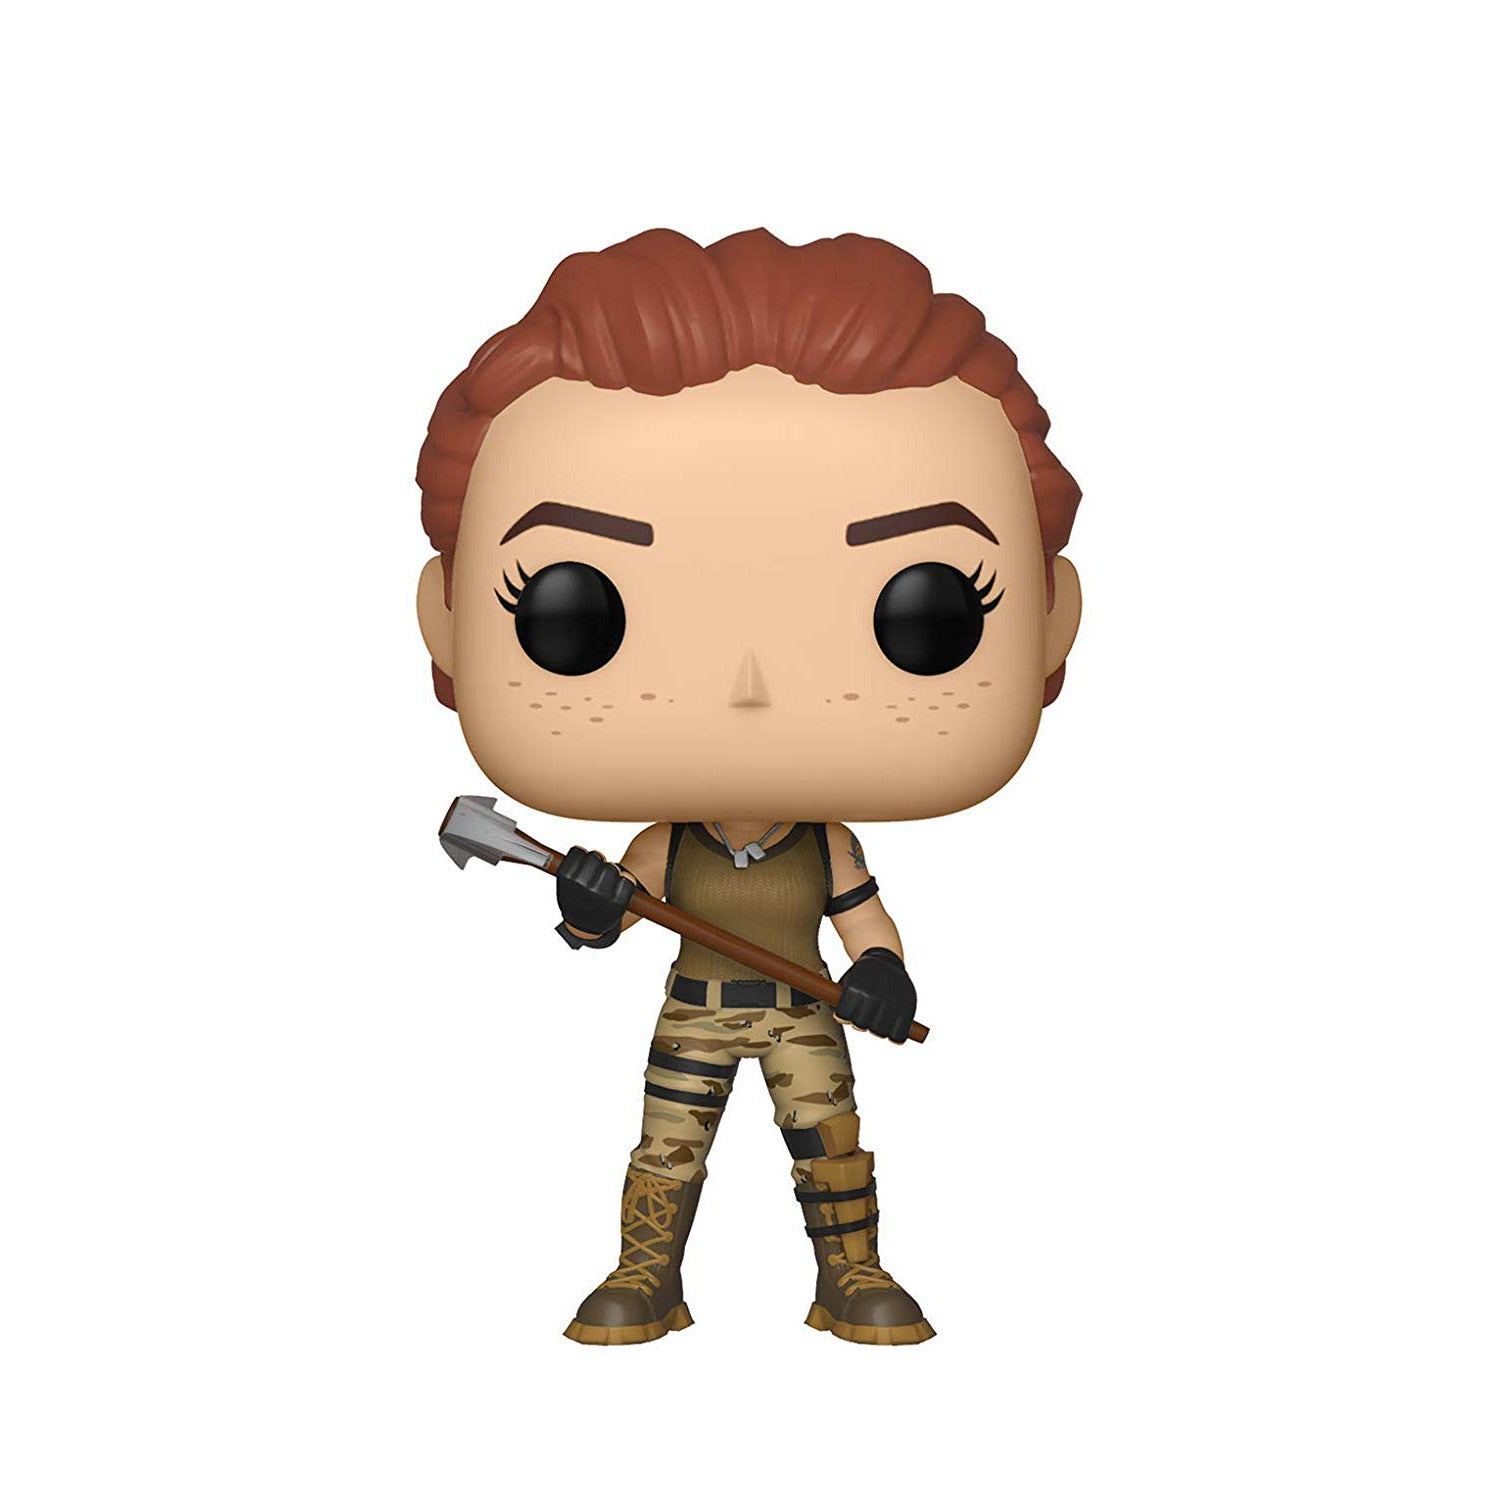 Fortnite Tower Recon Specialist Pop! Games Vinyl Figure Pop! Games Vinyl Figure